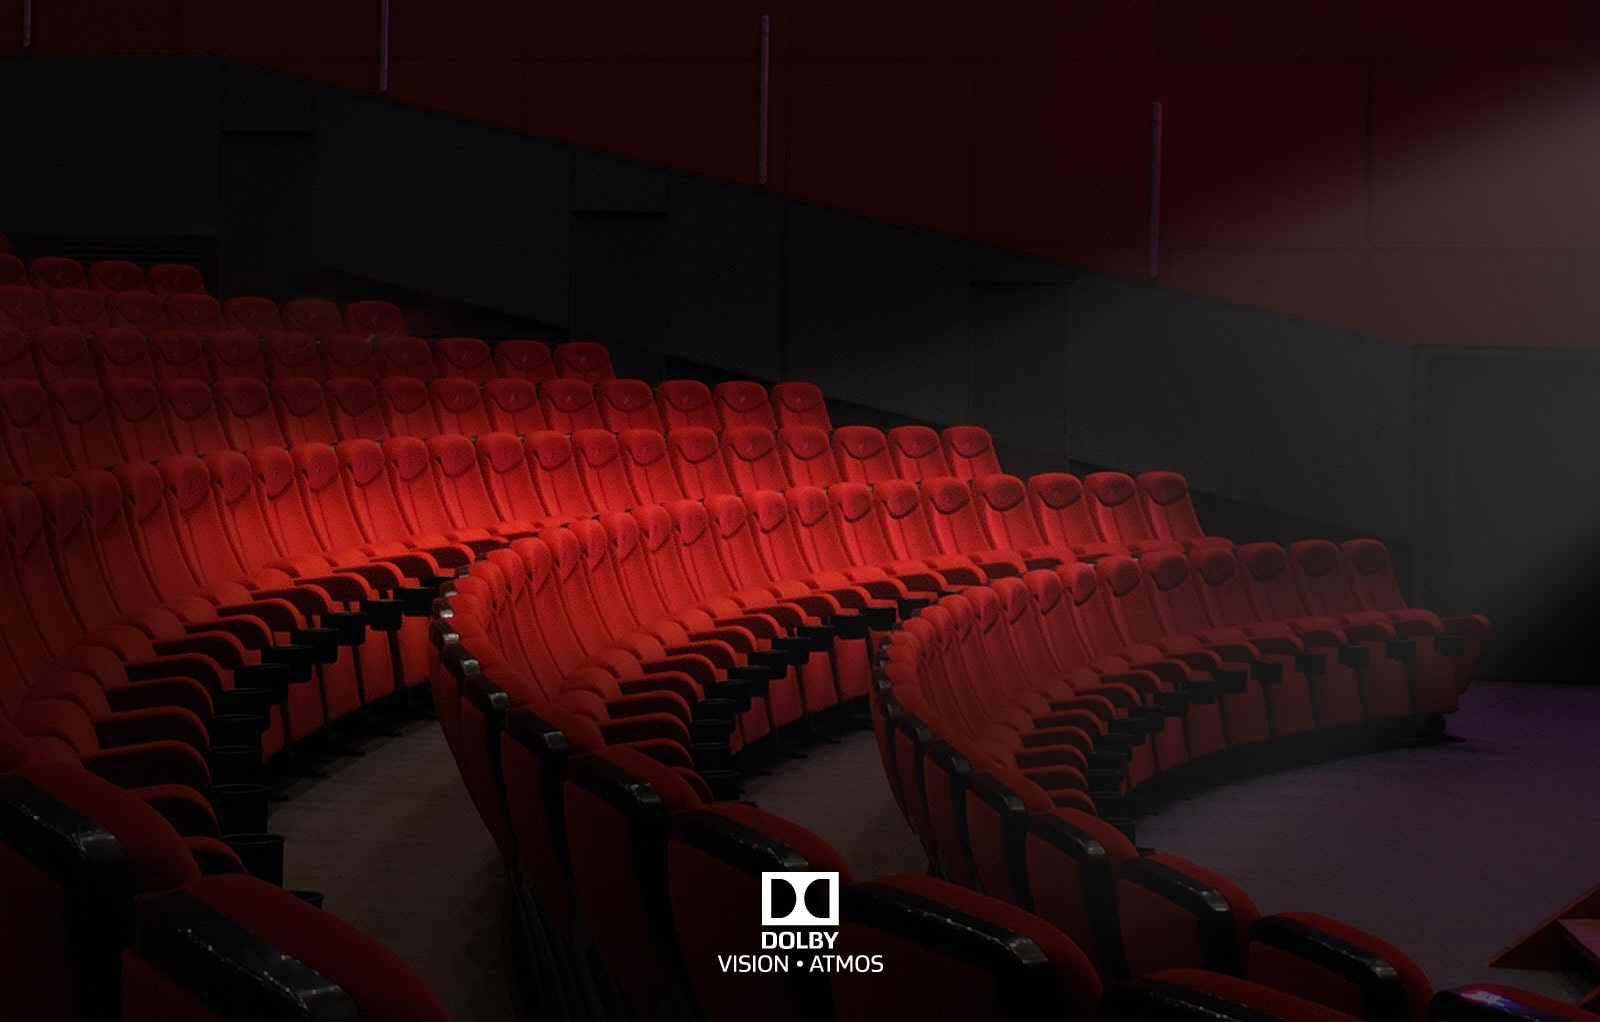 The premium cinema experience created just for you